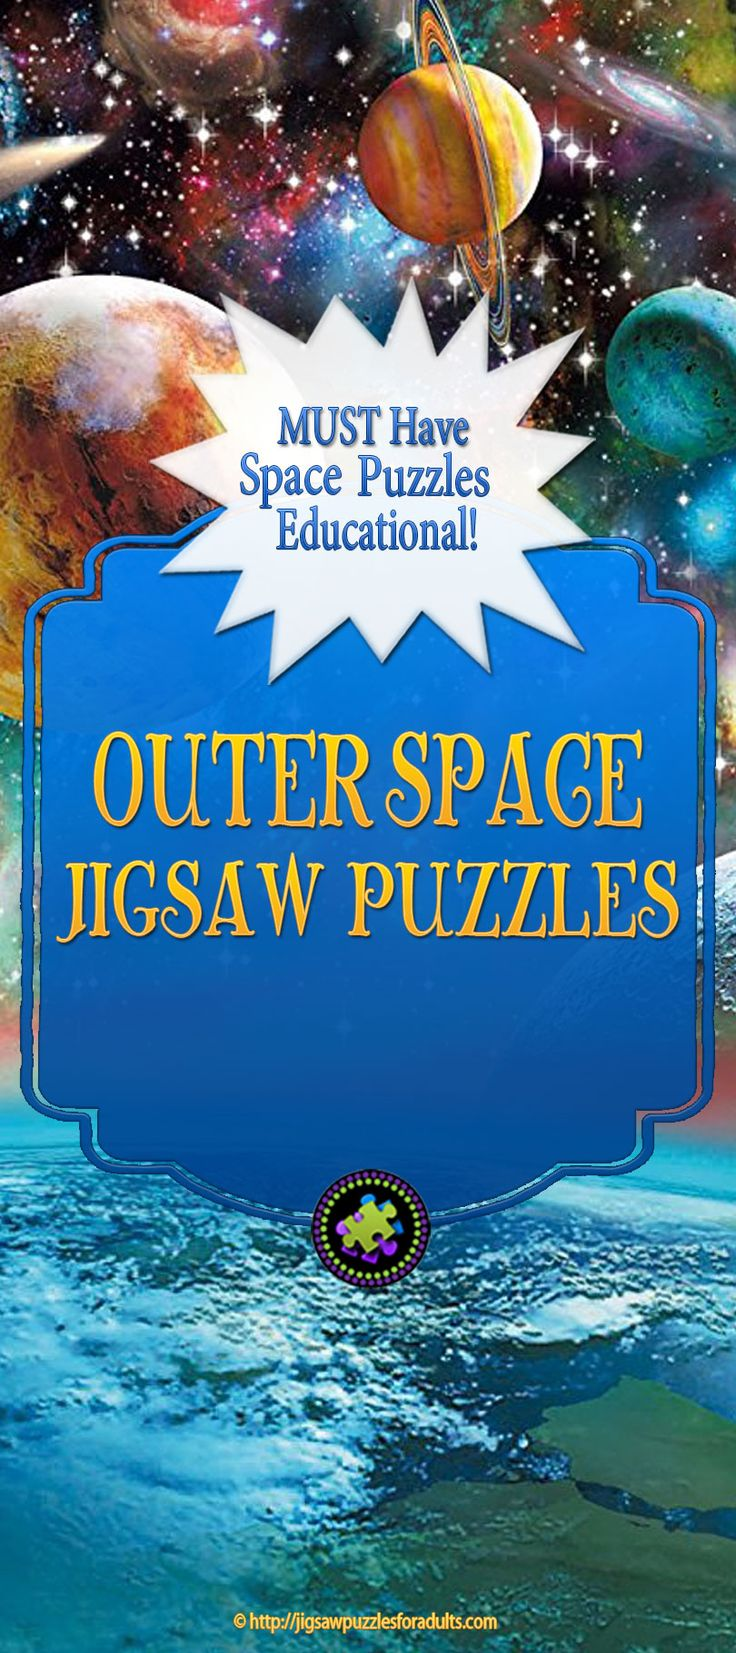 Outer Space Jigsaw Puzzles are perfect for all geeky science puzzlers.You'll find plenty of beautiful outer space puzzles, that are fun and educational for all ages